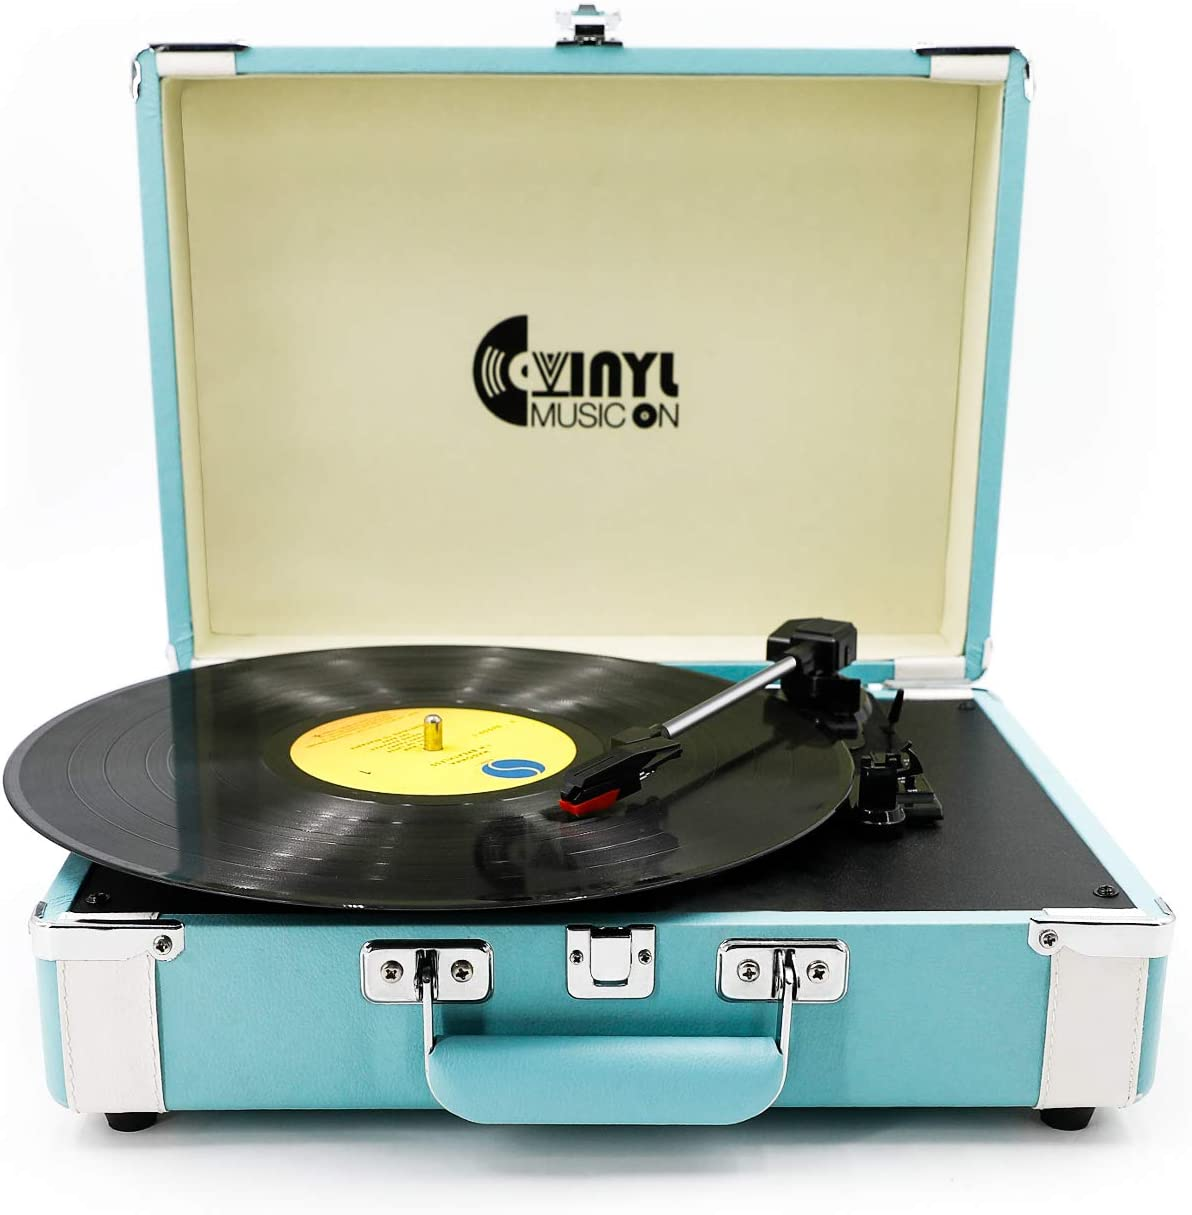 3 Speed Suitcase Turntable with Speakers,Portable Vinyl Record Player with RCA Output&Aux Input and Headphone Jack,Sky-Blue